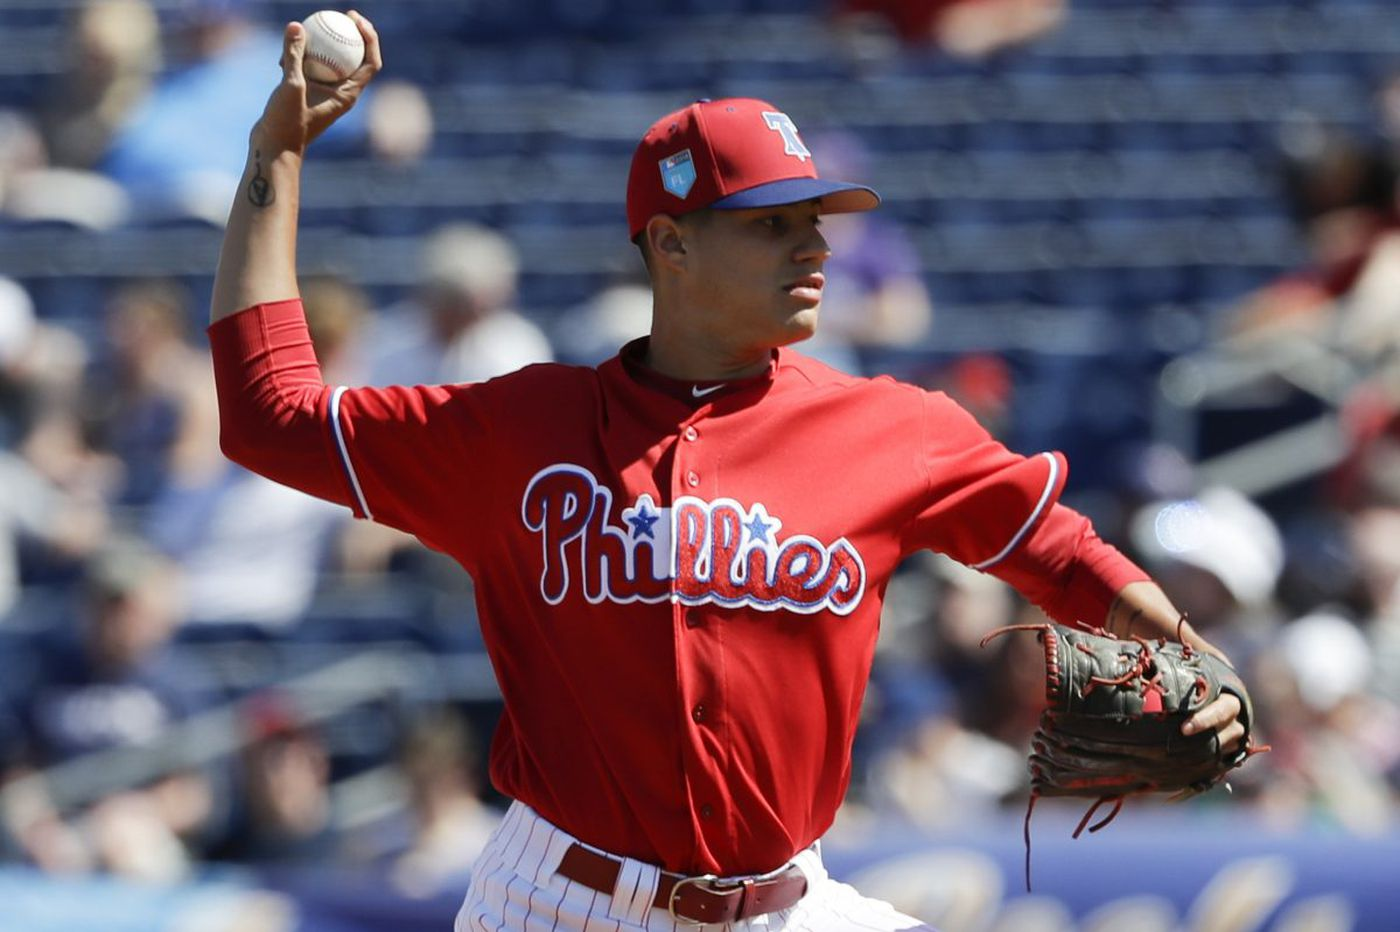 Phillies pitcher Yacksel Rios shines in season debut to finish 'a crazy day'